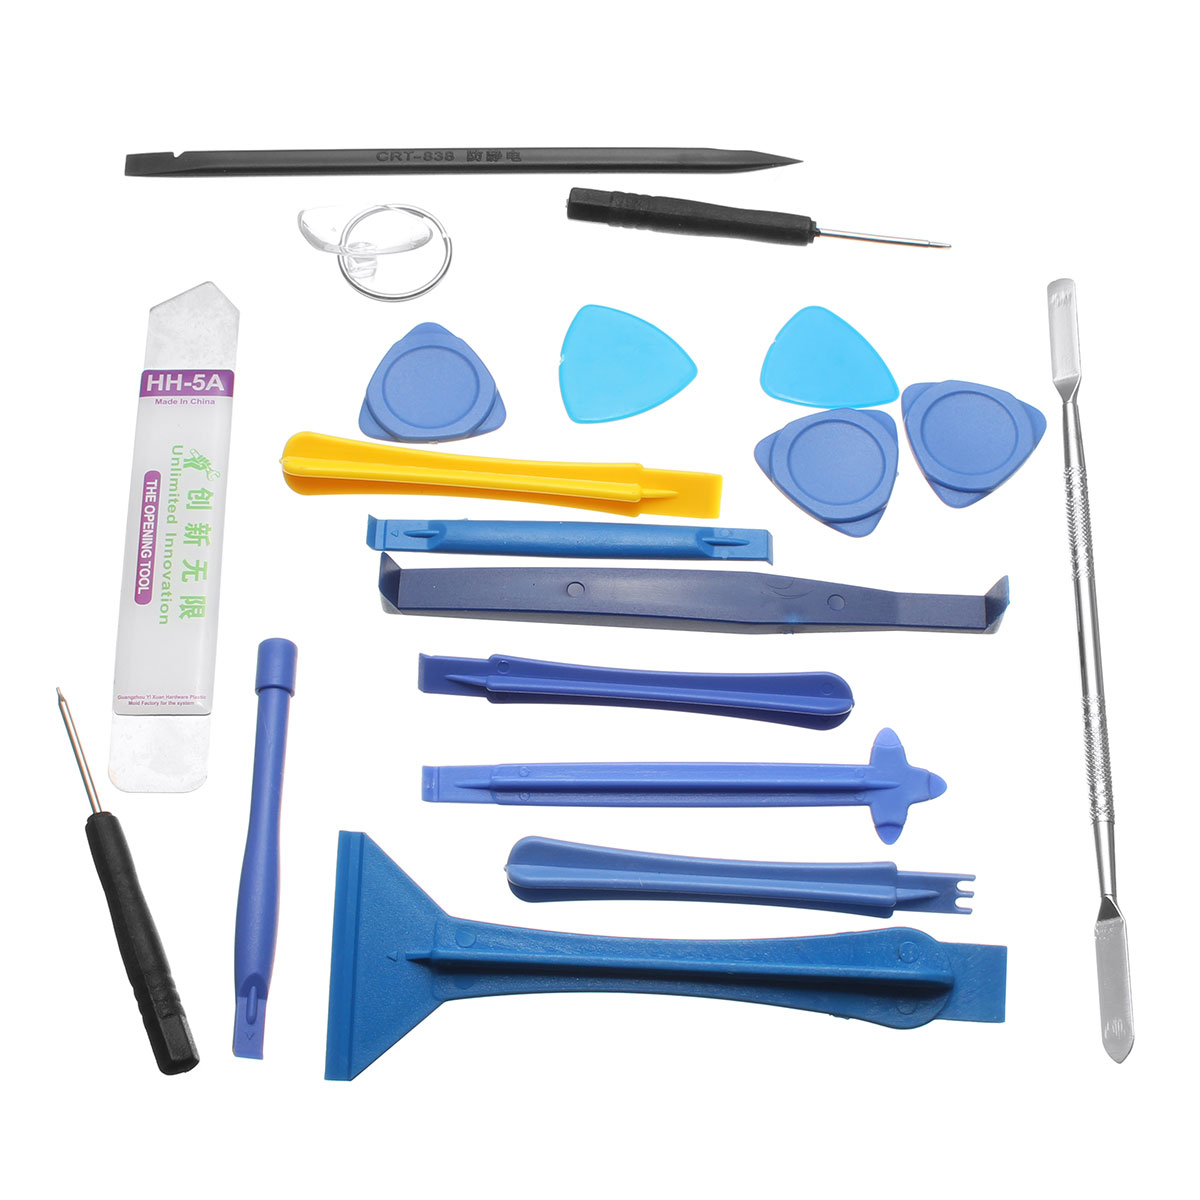 19 Pcs Repair Tools Laptop Phone&Screen Disassemble Tools Set Kit For i-Phone For i-Pad Cell Phone Tablet PC(China (Mainland))